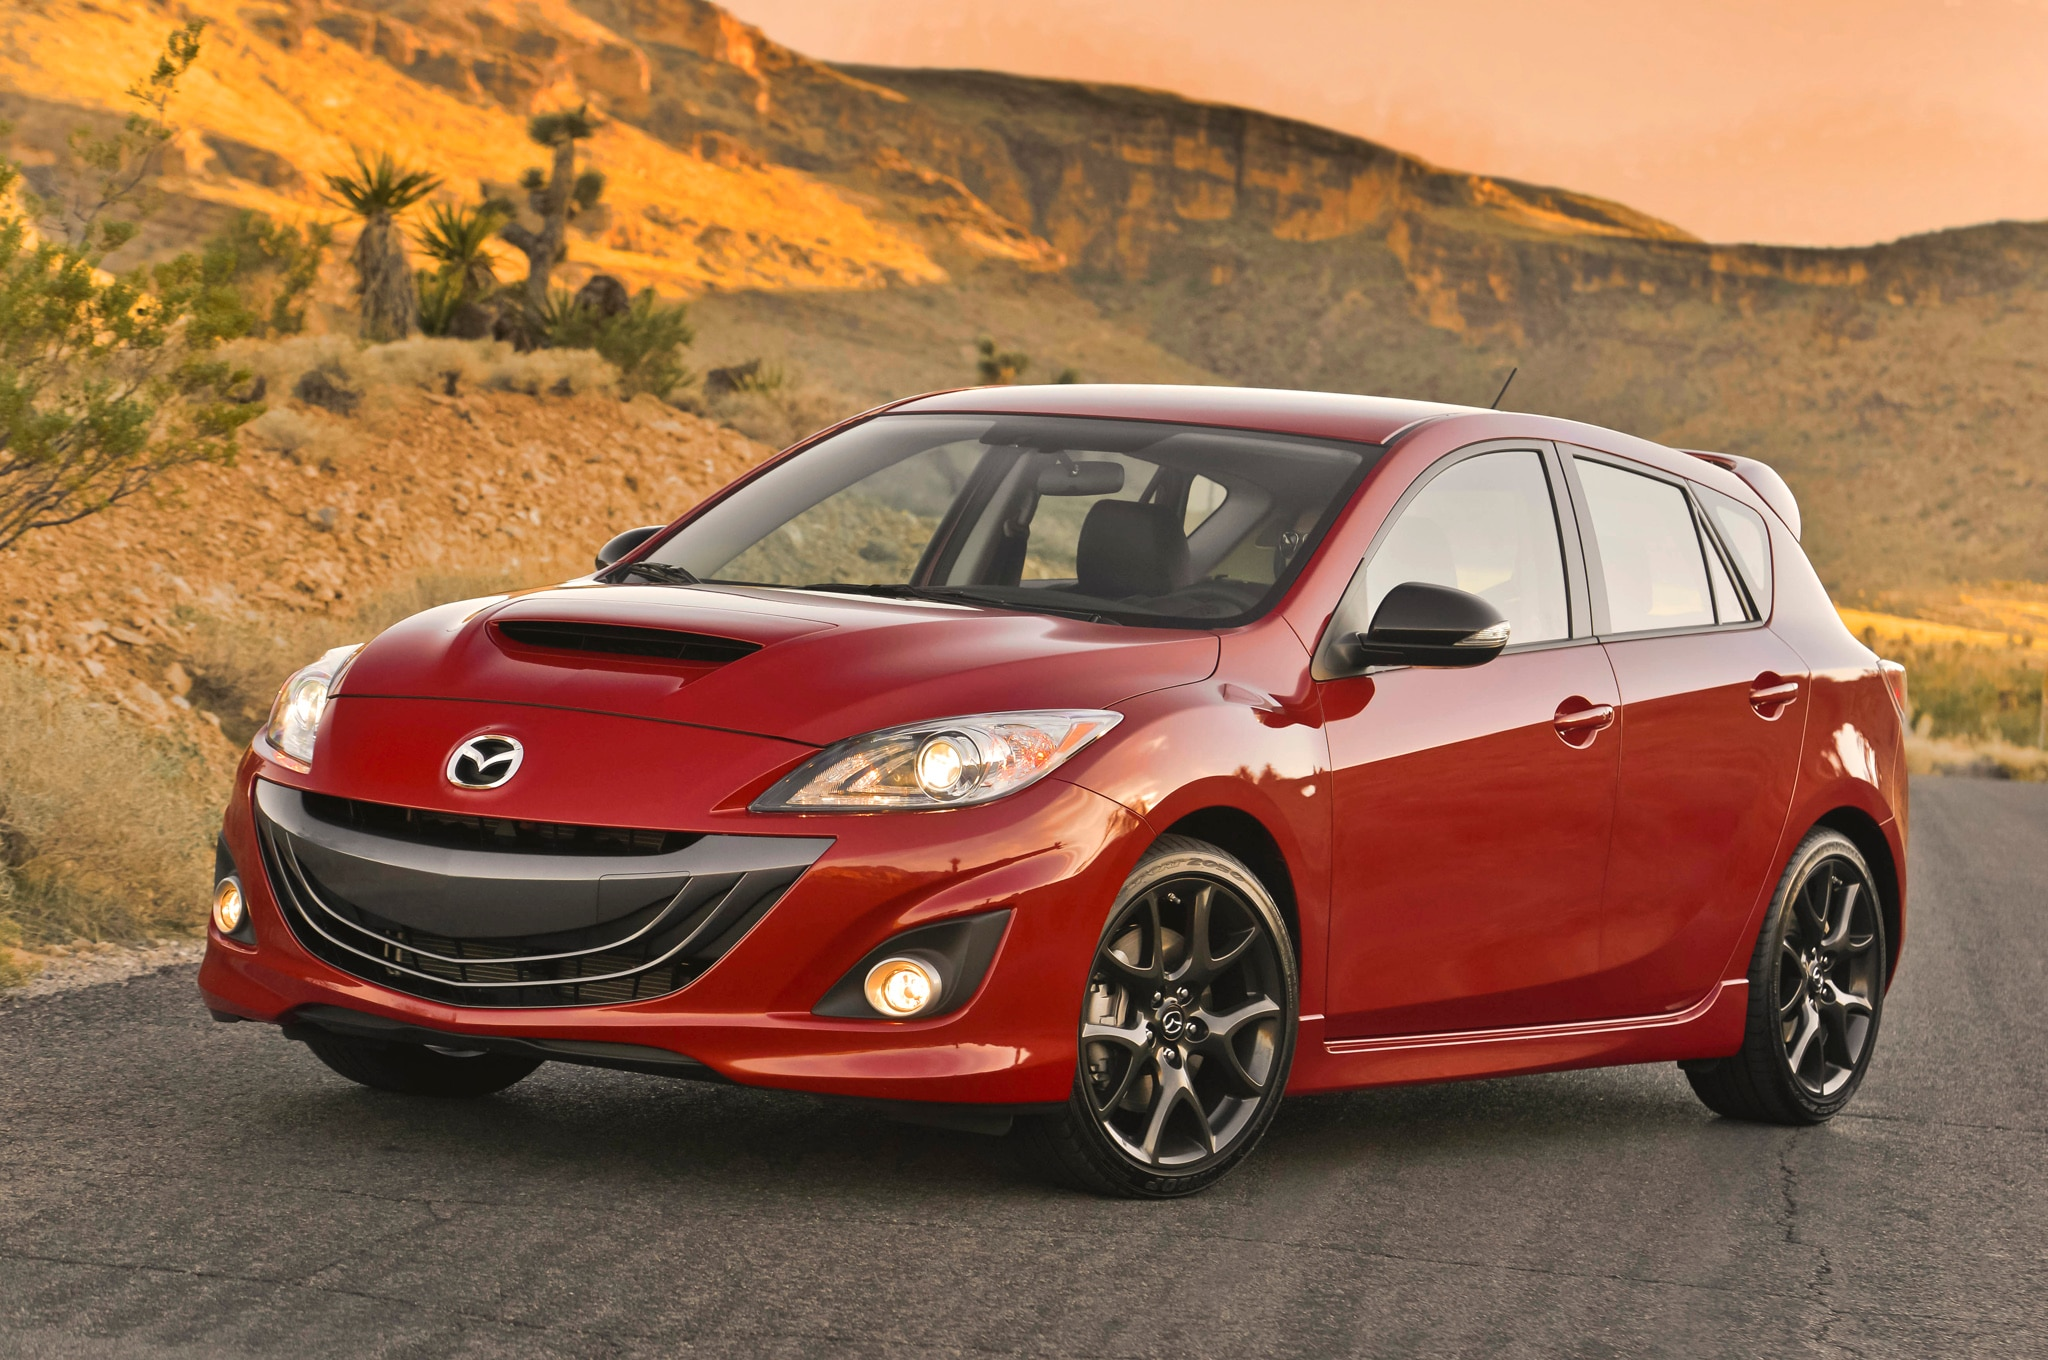 2013 mazda mazdaspeed 3 touring editors 39 notebook. Black Bedroom Furniture Sets. Home Design Ideas